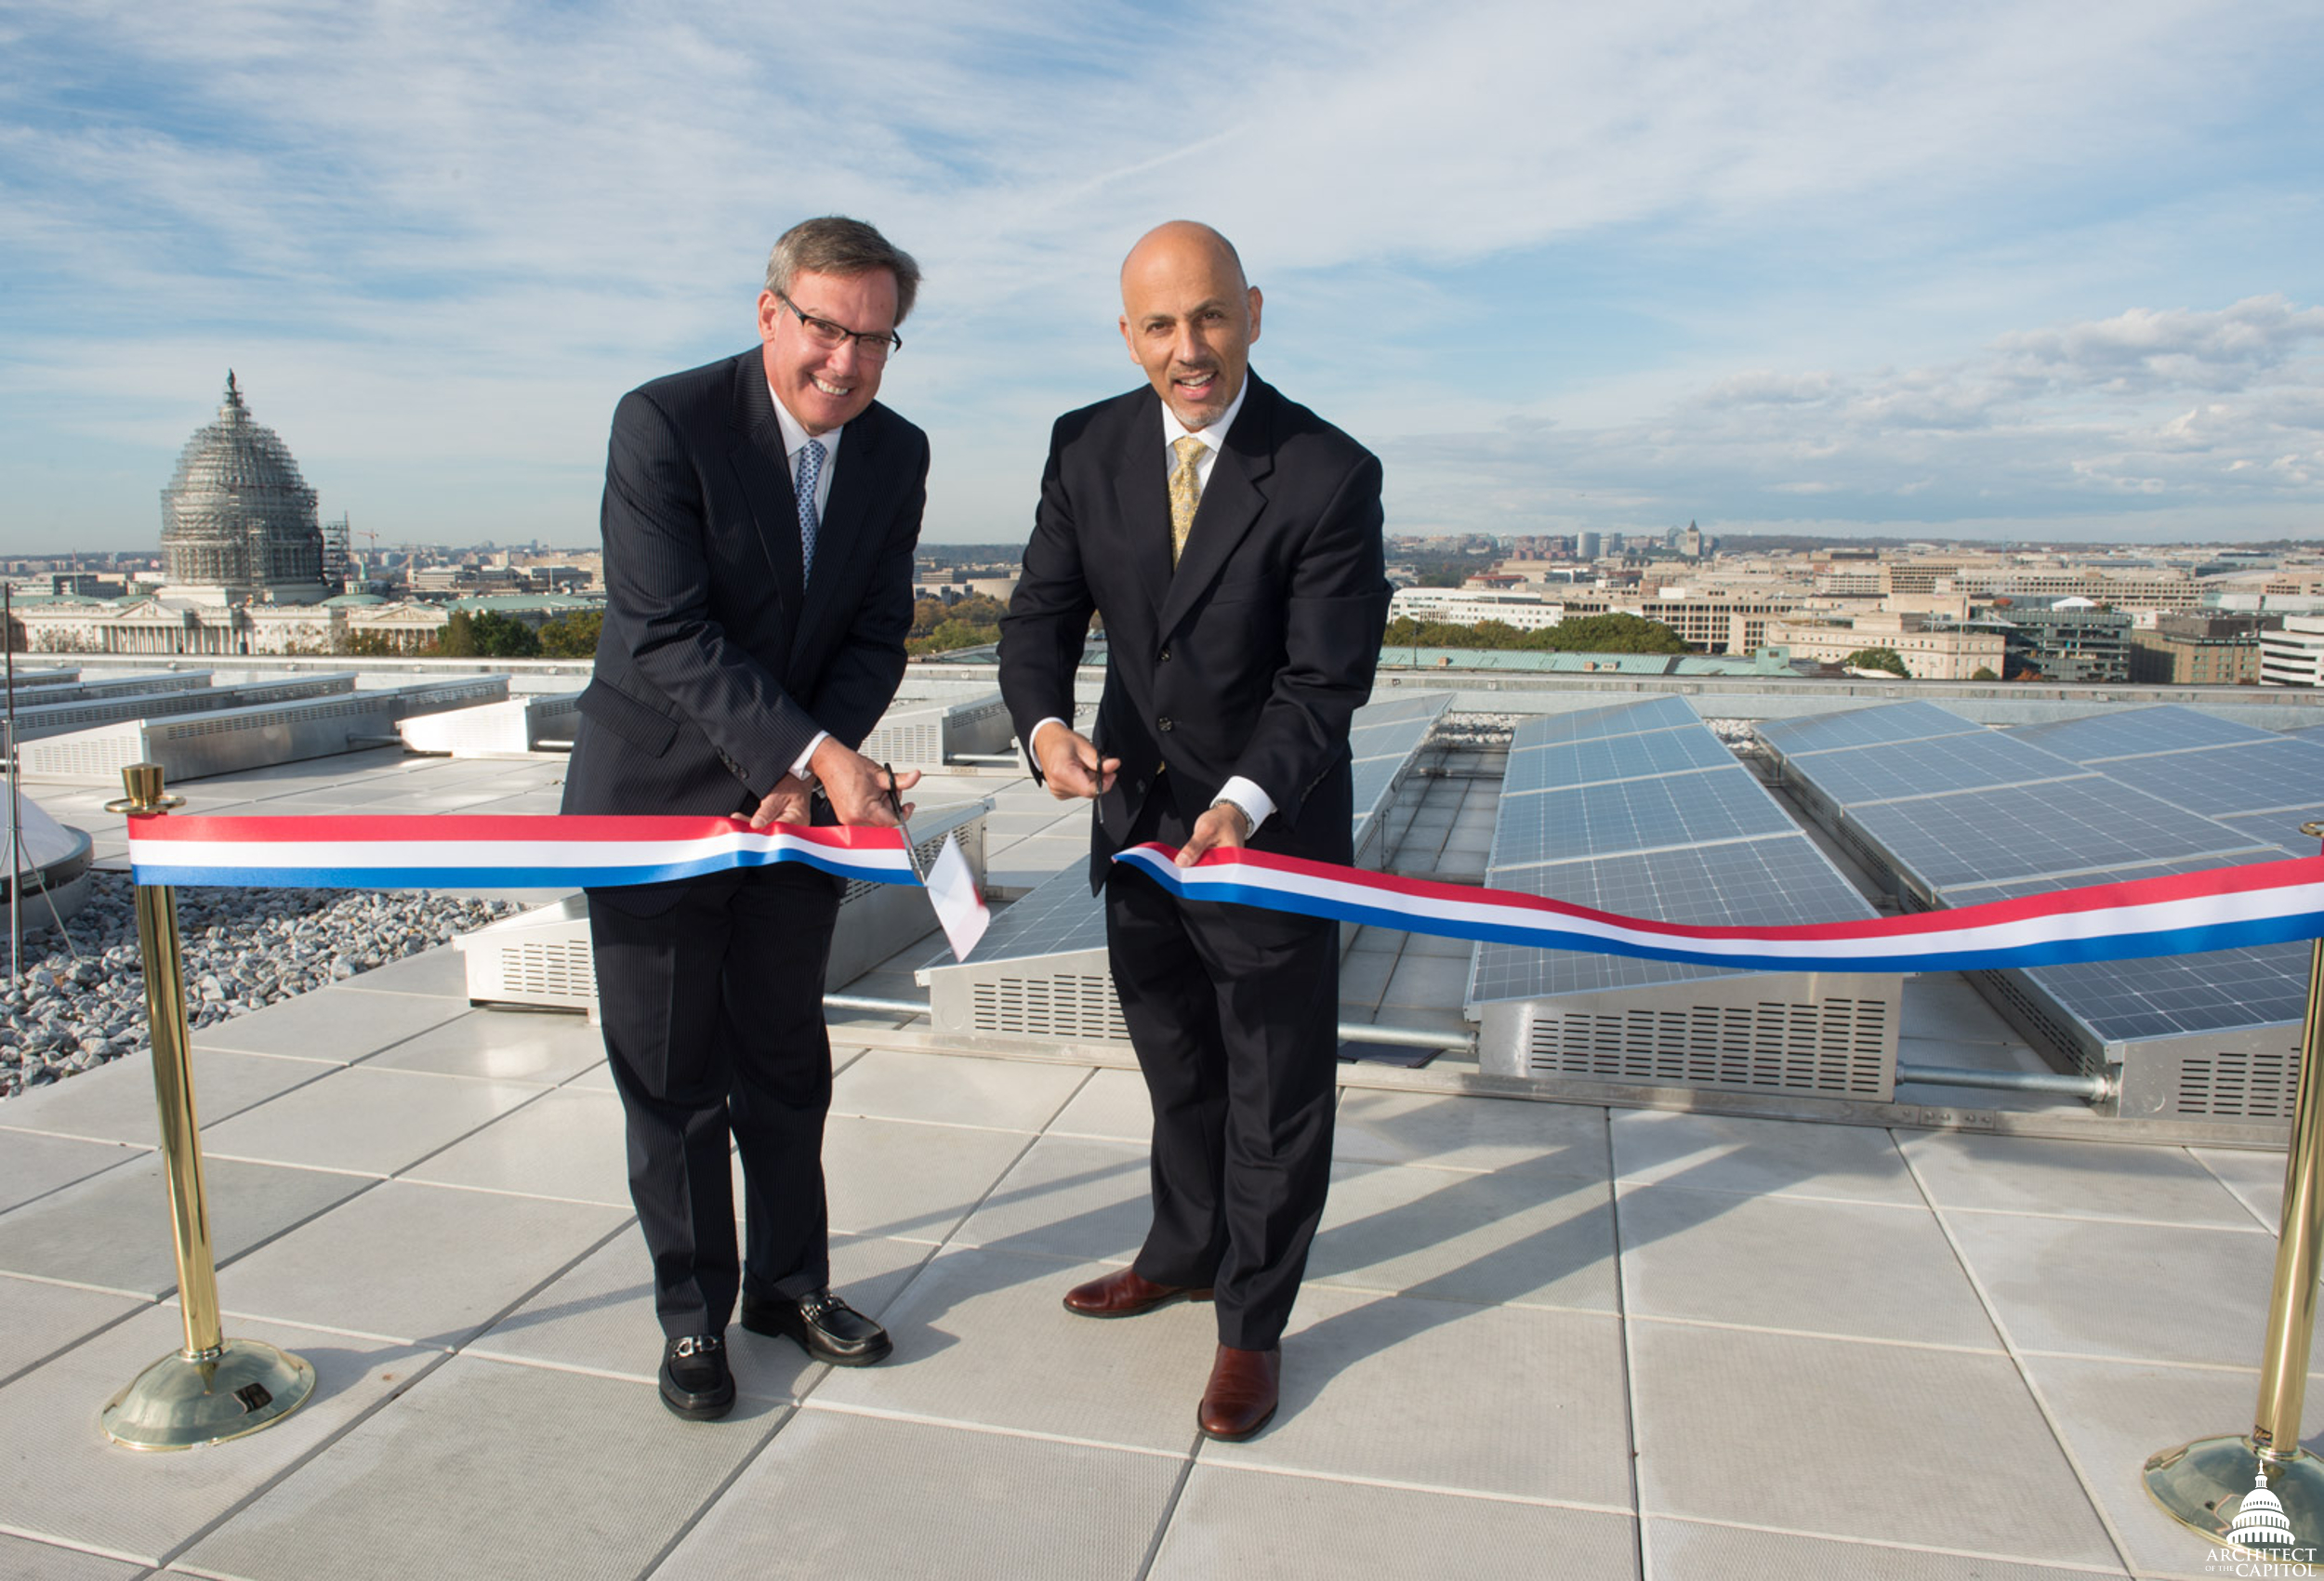 Ribbon cutting ceremony on the Hart Senate Office Building roof. Capitol Dome in background.